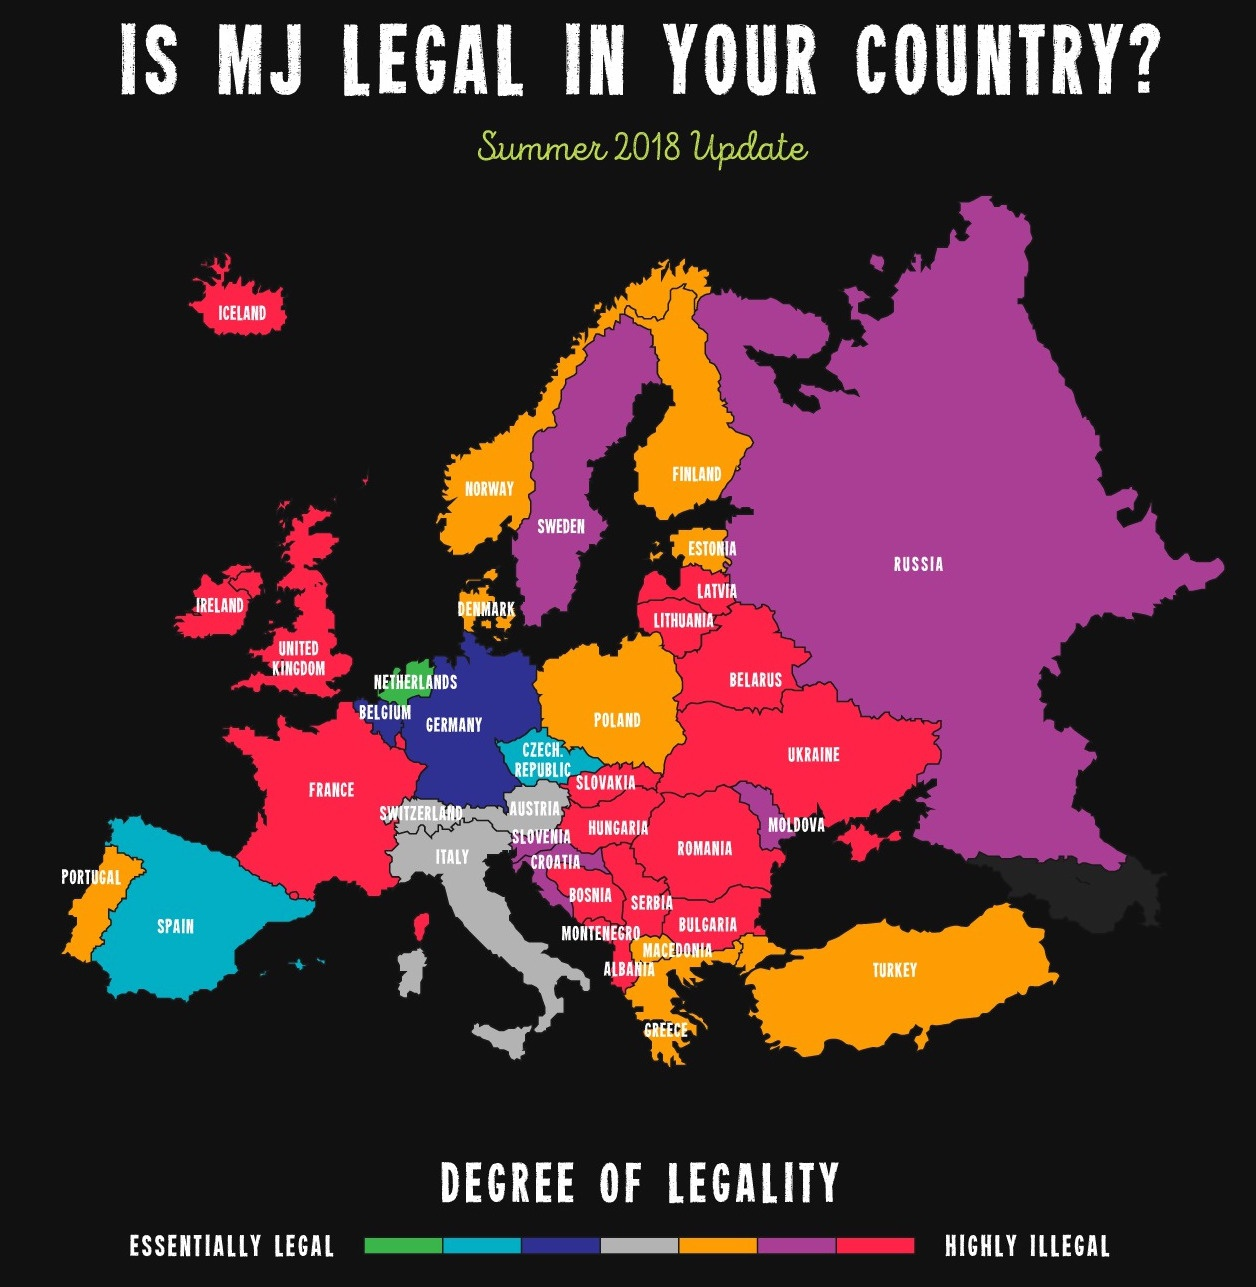 Is Marijuana Legal in Your Country?